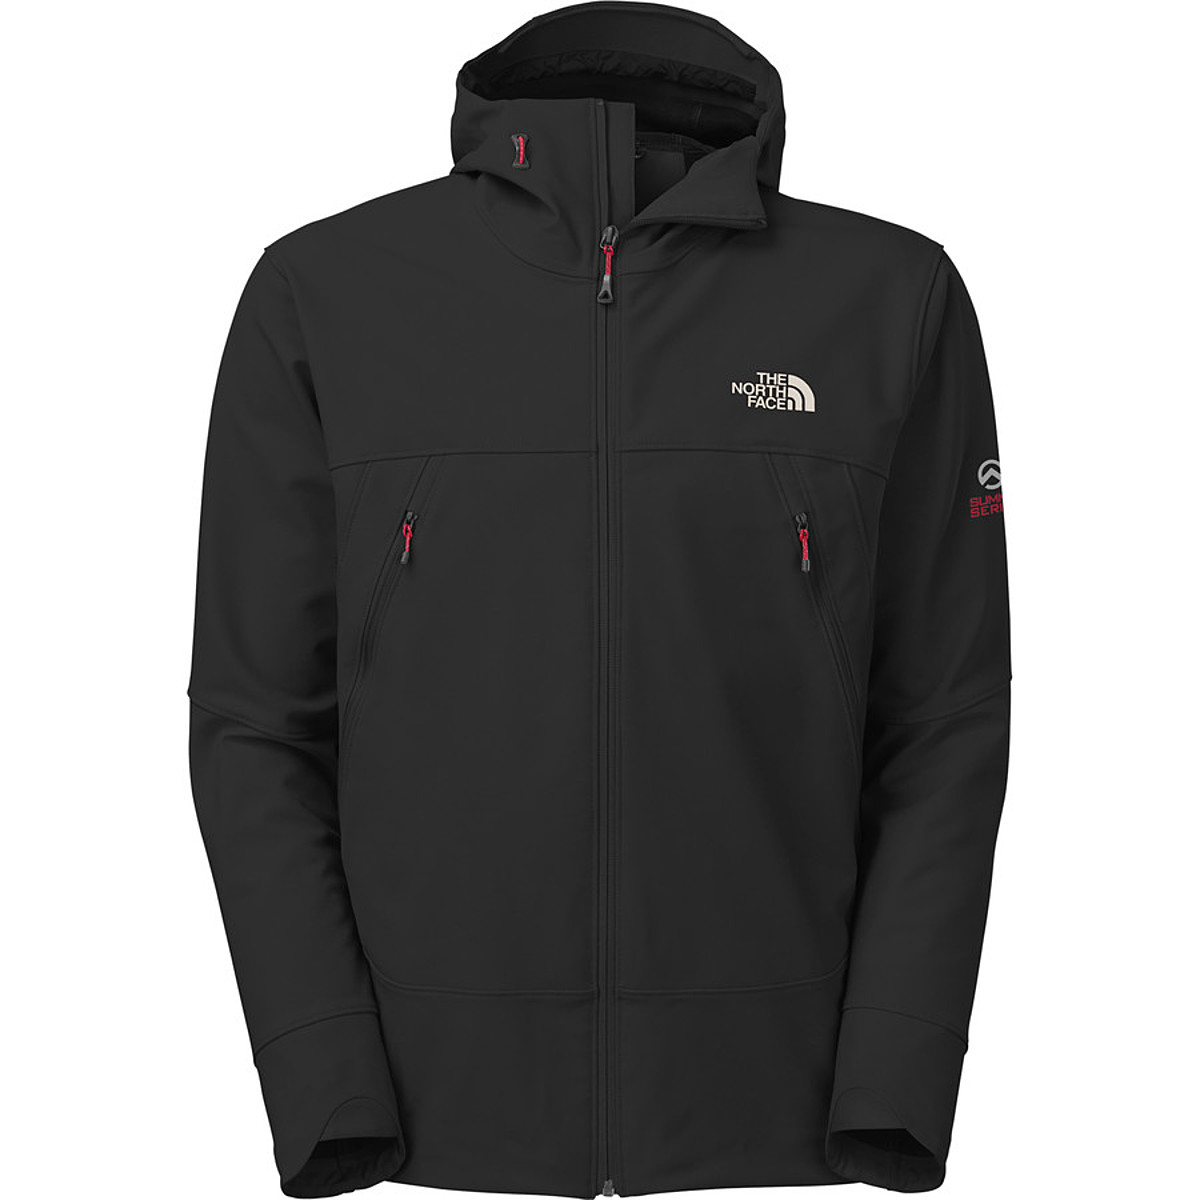 The North Face Jet Hooded Soft Shell